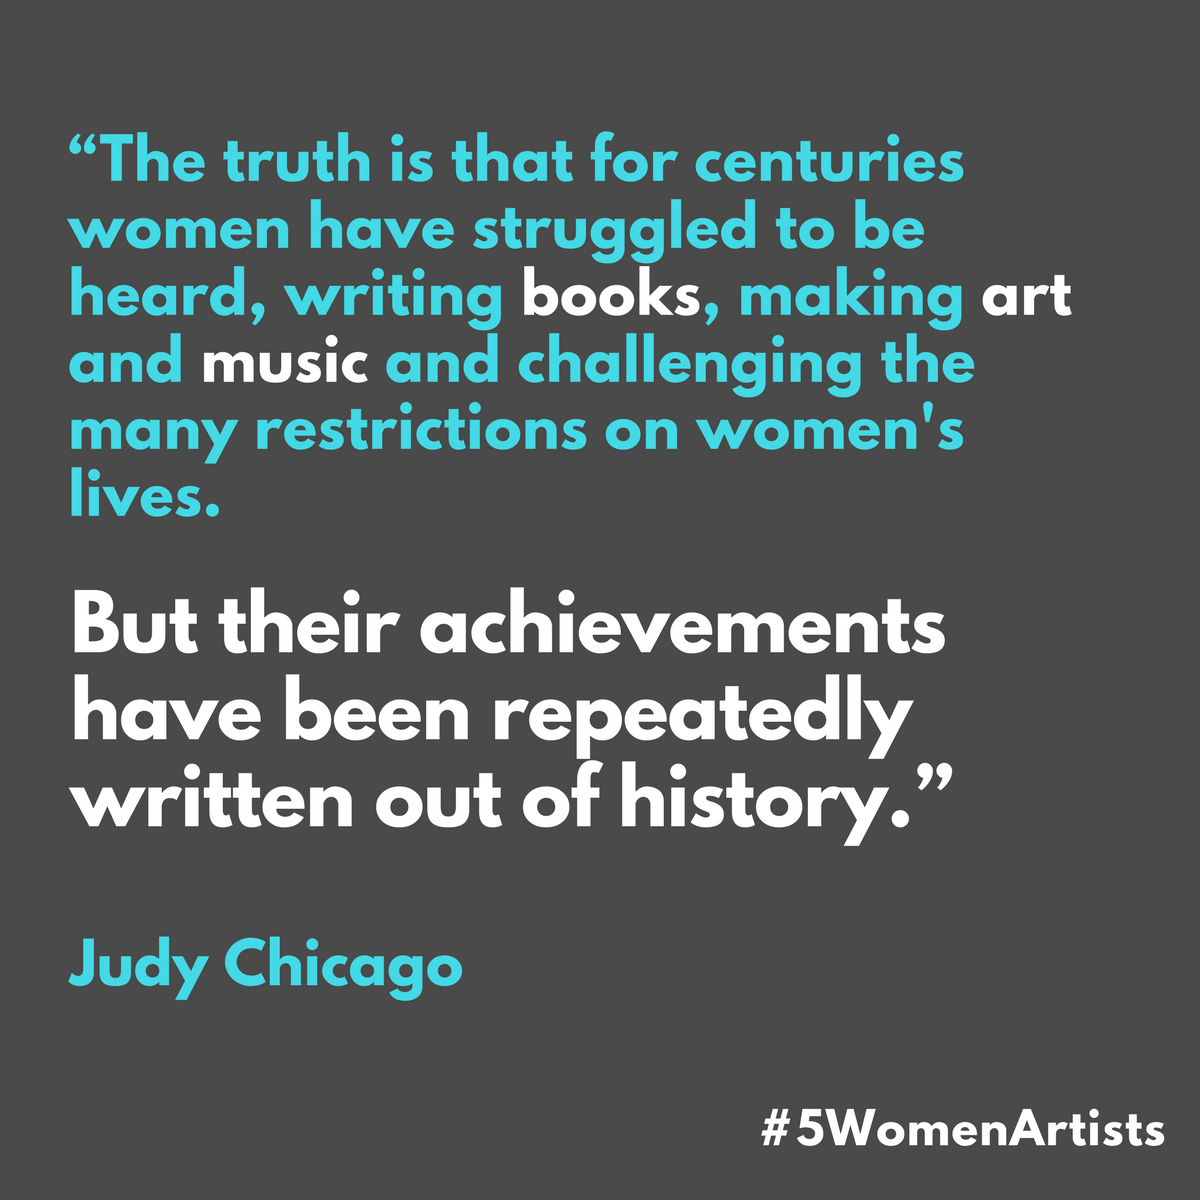 5wa_quote_judychicago_square.png